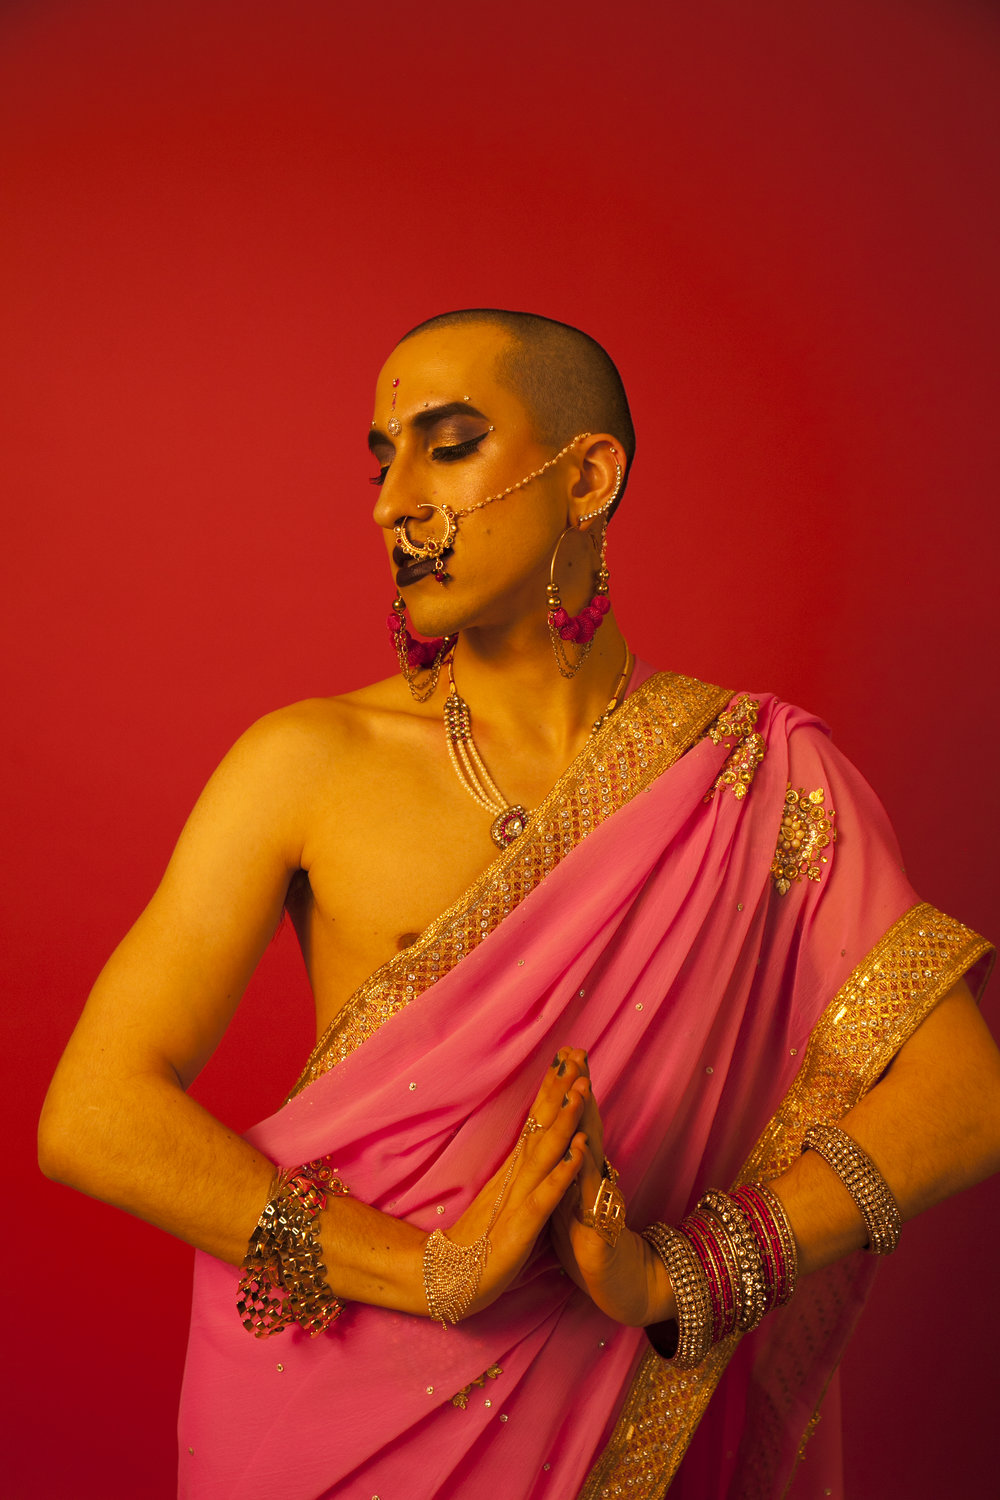 Touching Across Time: A Coming Out Letter to My Indian Grandmother By Guest Writer, Aleksandr Chandra · Photography by Landyn Pan